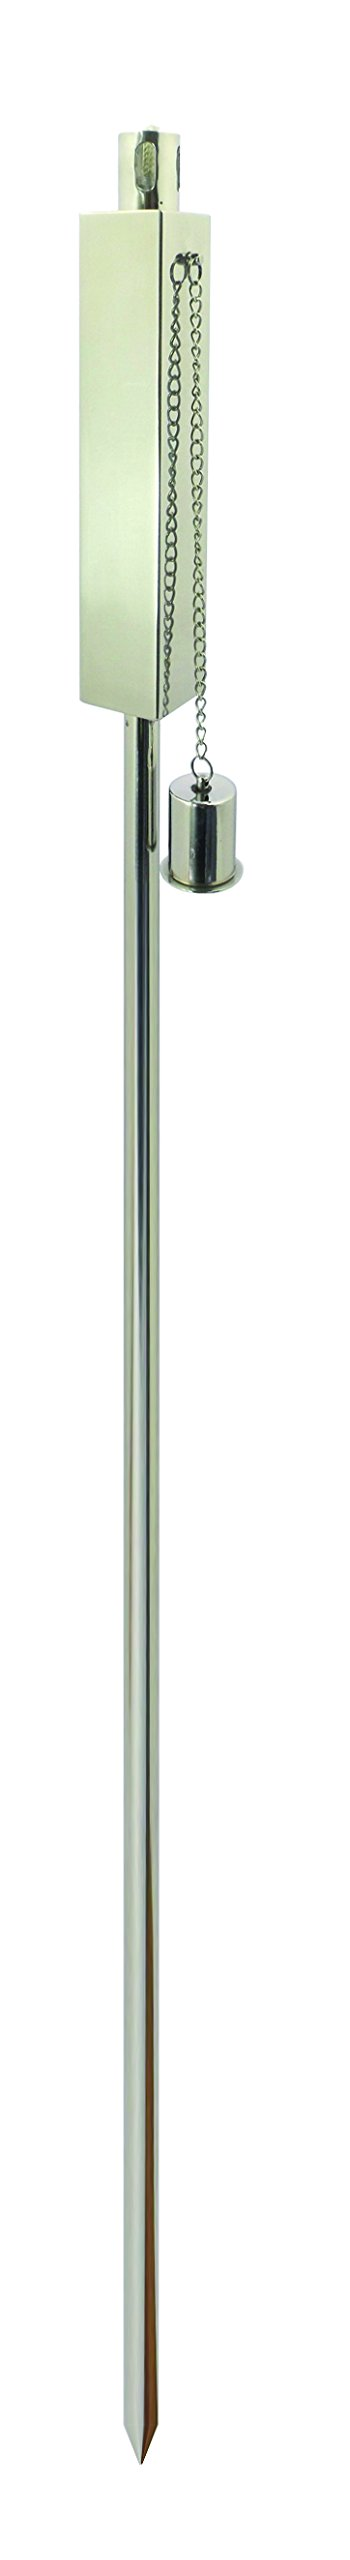 Anywhere Torch -Polished Stainless Rectangle (2 pk)